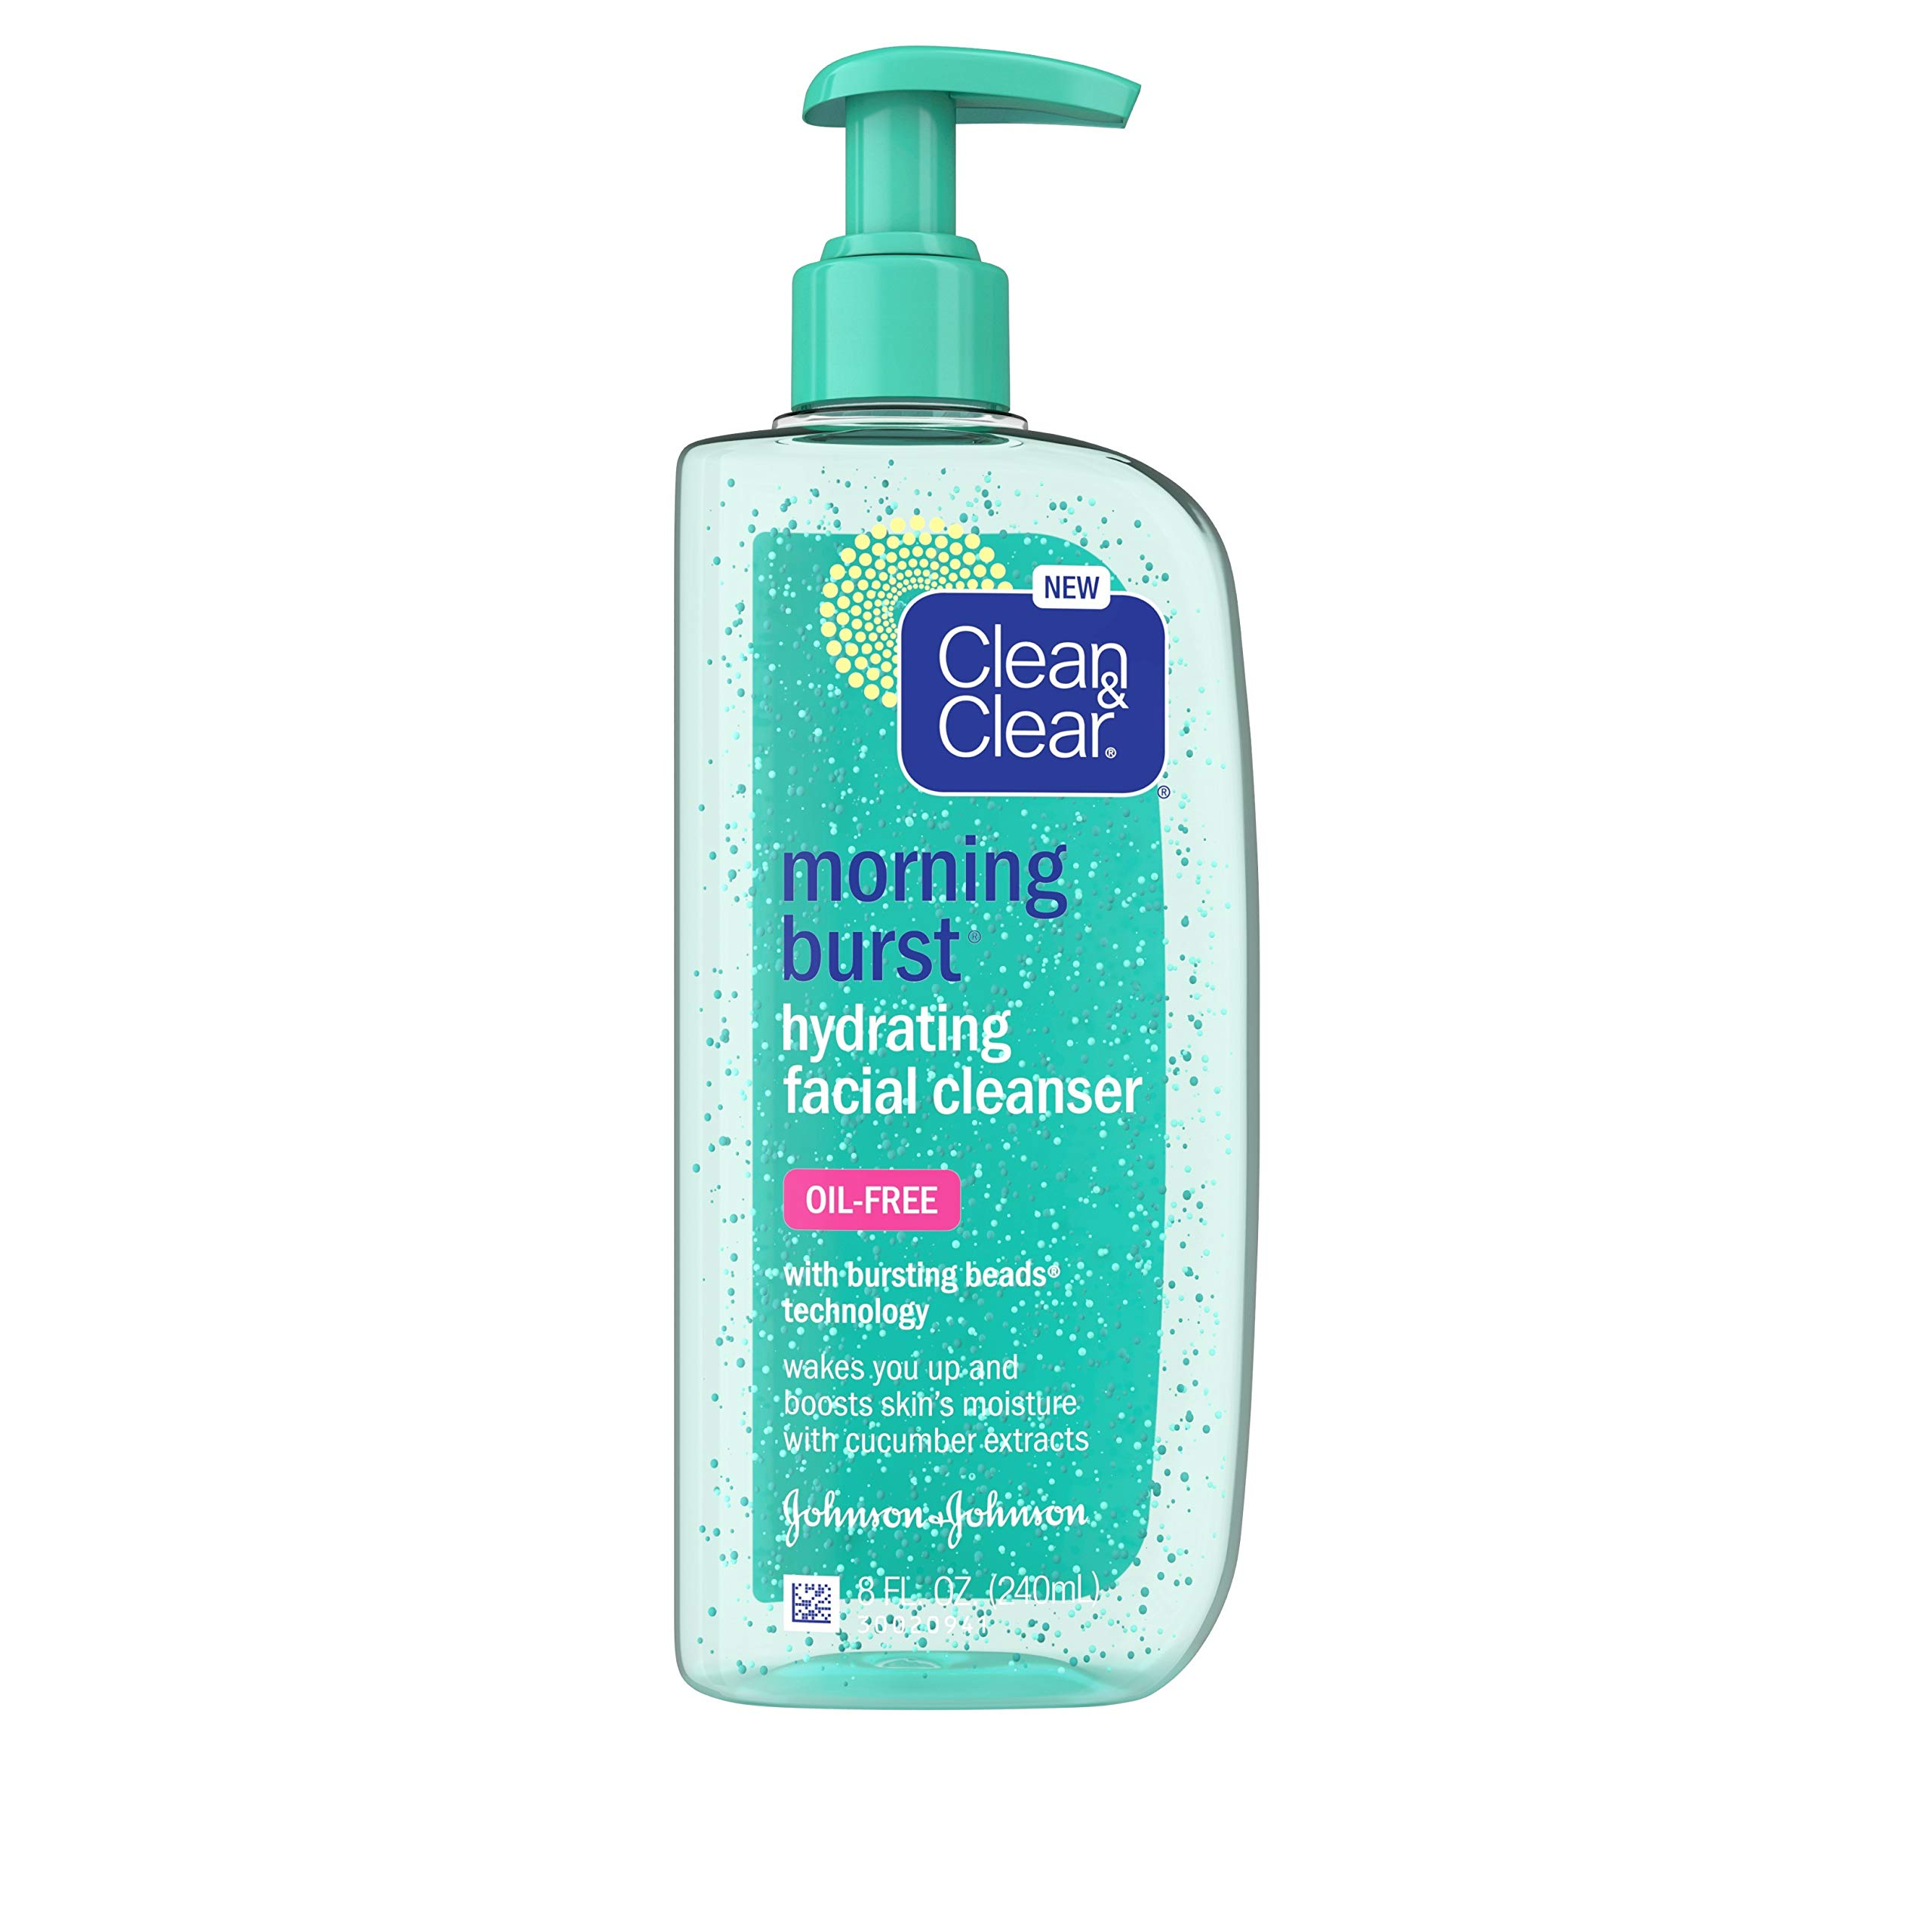 Clean & Clear Morning Burst Oil-Free Hydrating Facial Cleanser with Cucumber & Green Mango Extract, Gentle Daily Face Wash for All Skin Types, 8 fl. Oz, Pack of 1